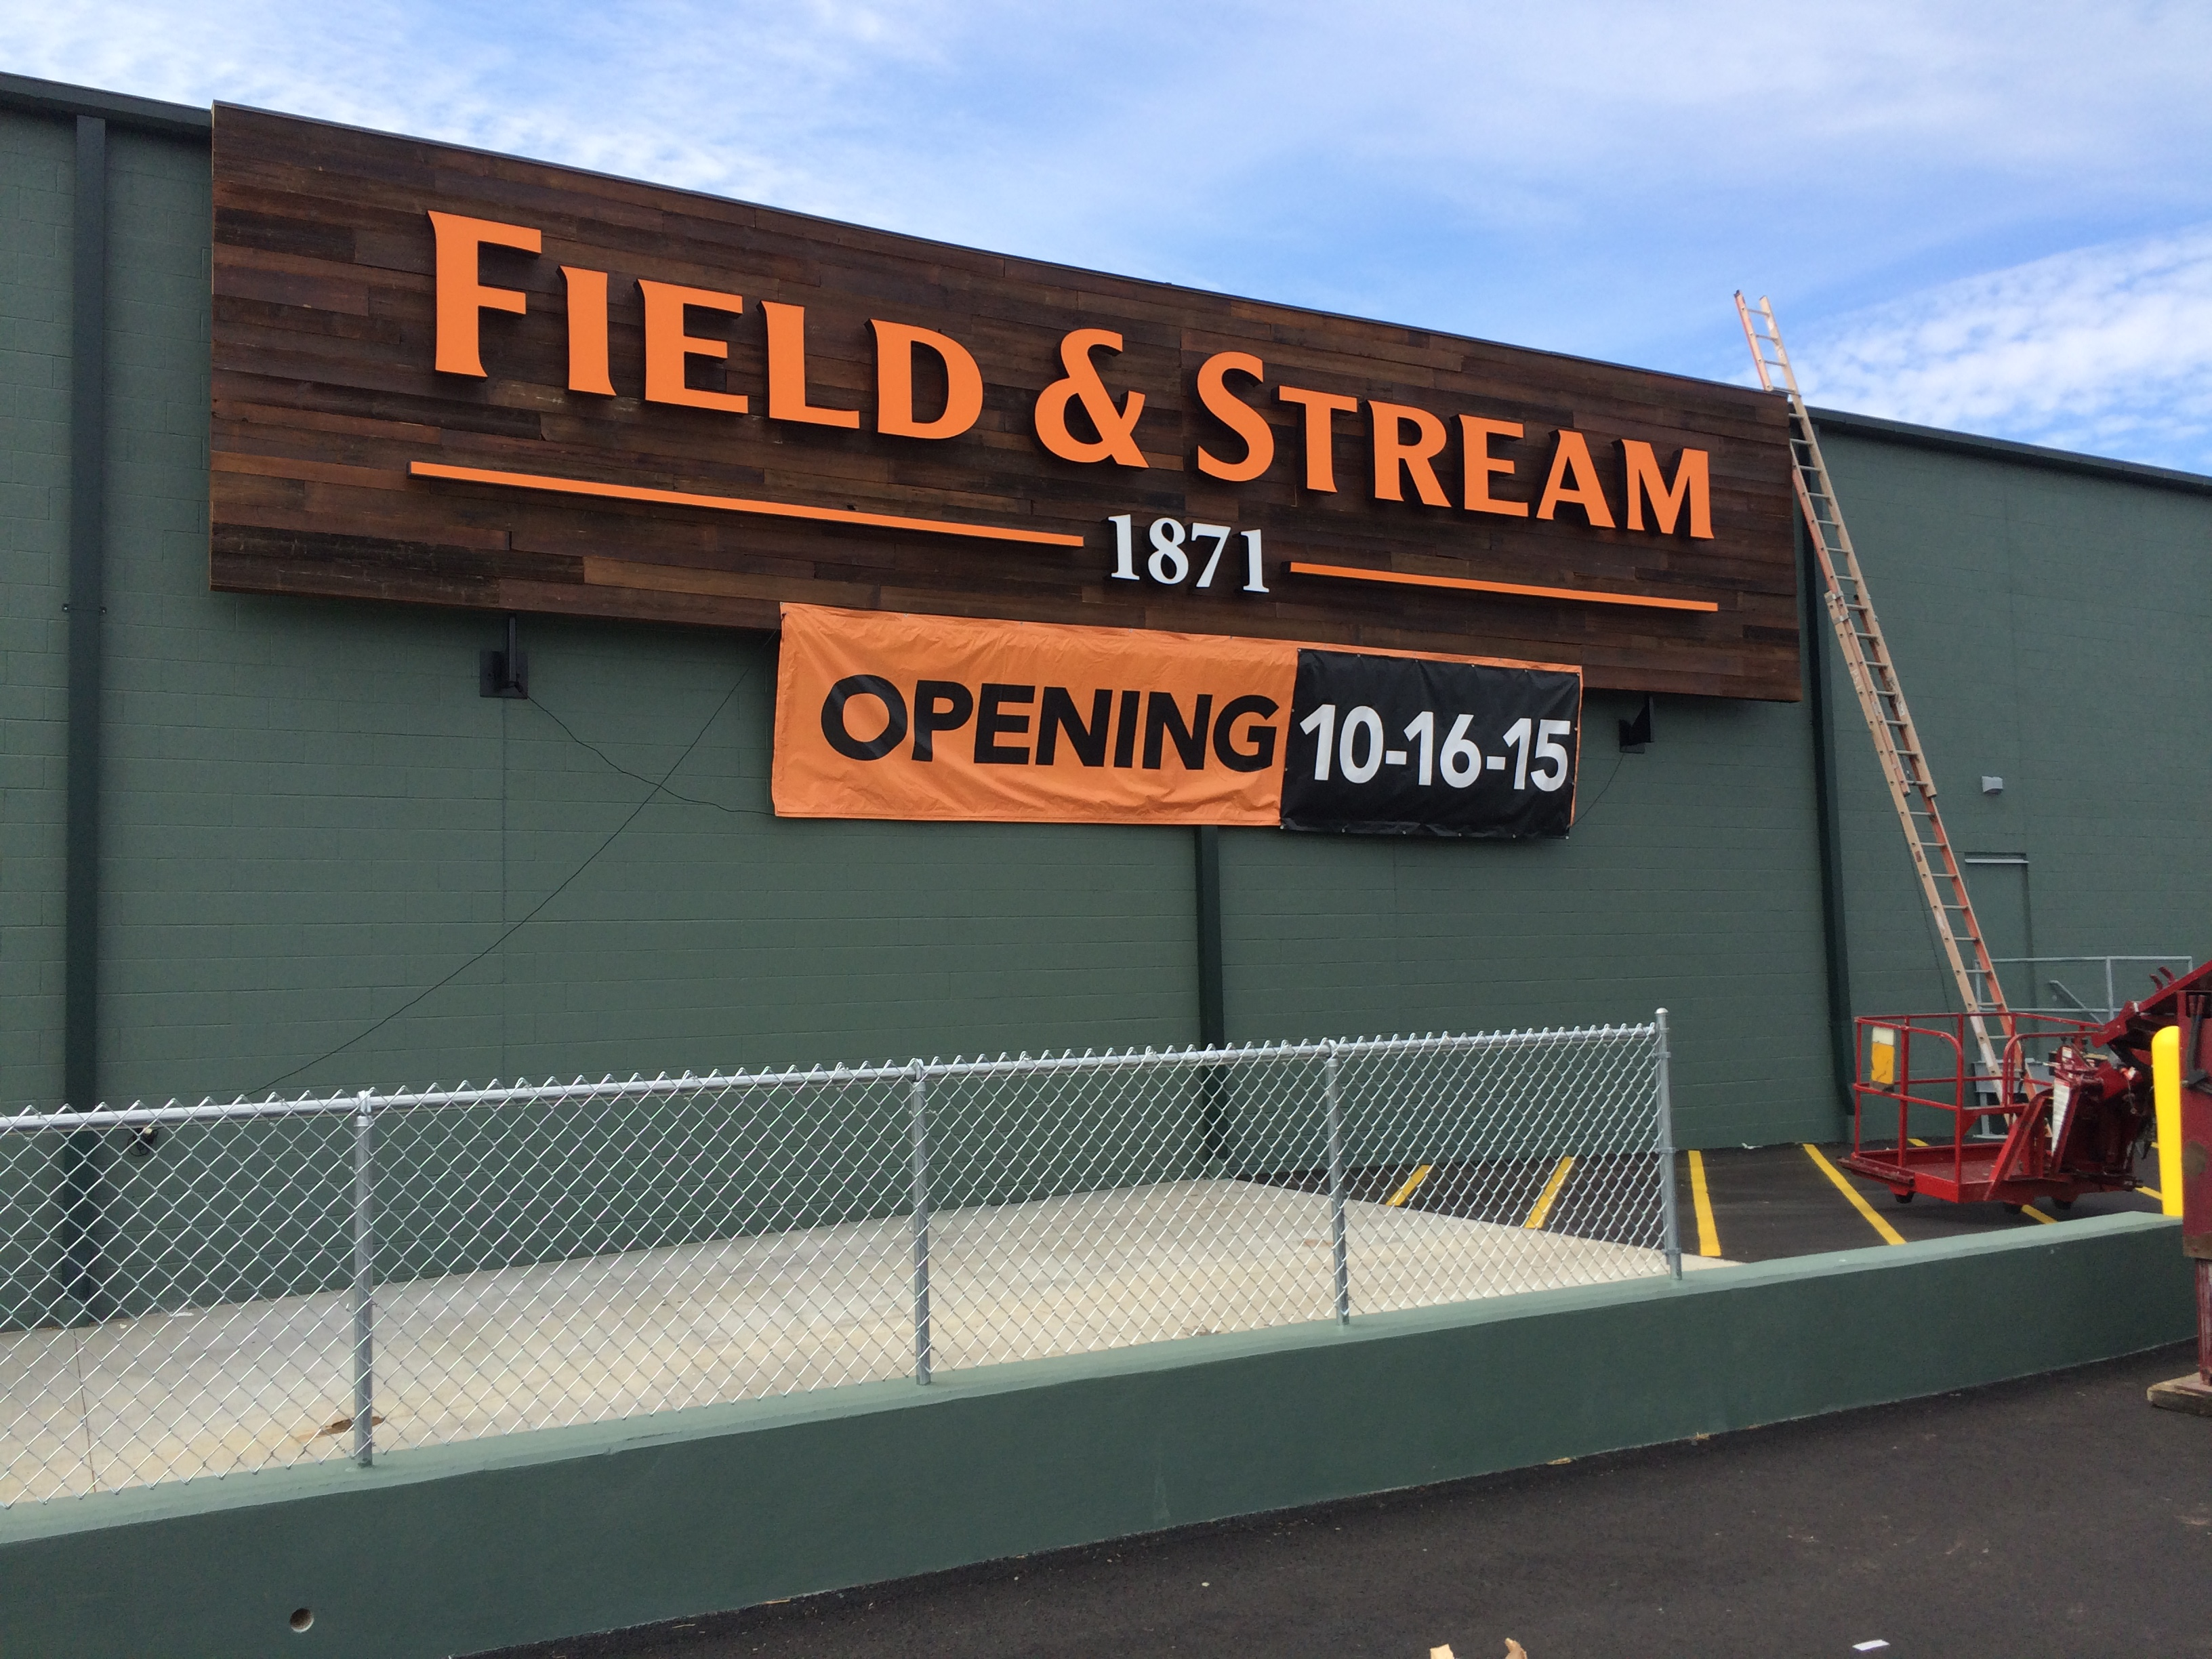 Field & Stream - Channel Letters - Illuminated